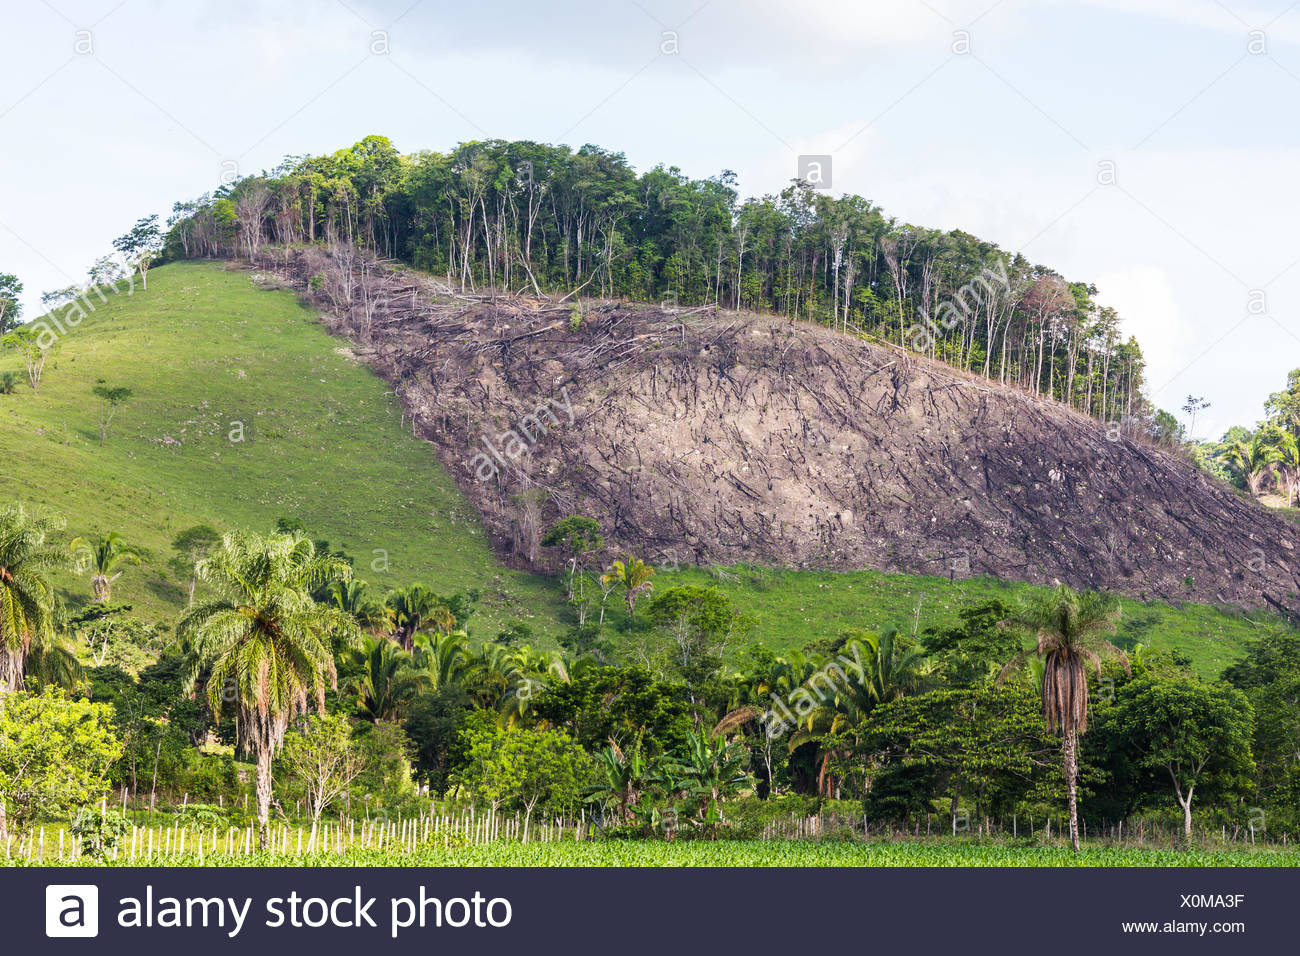 Deforestation in Guatemala. - Stock Image